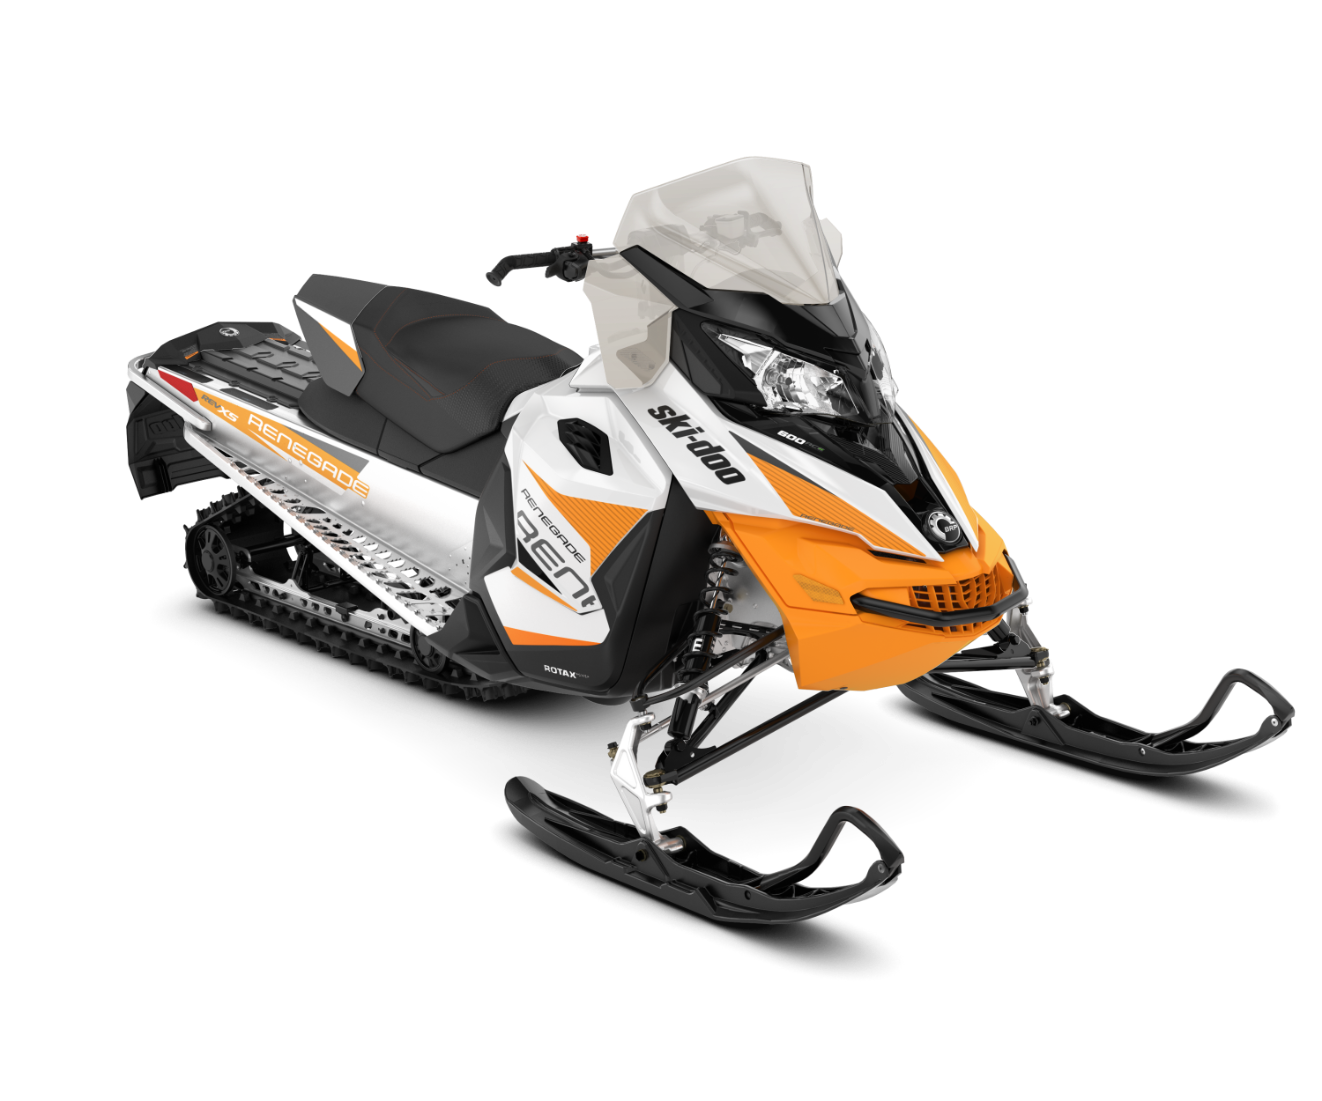 2019 Ski-Doo Renegade Sport 600 ACE in Hanover, Pennsylvania